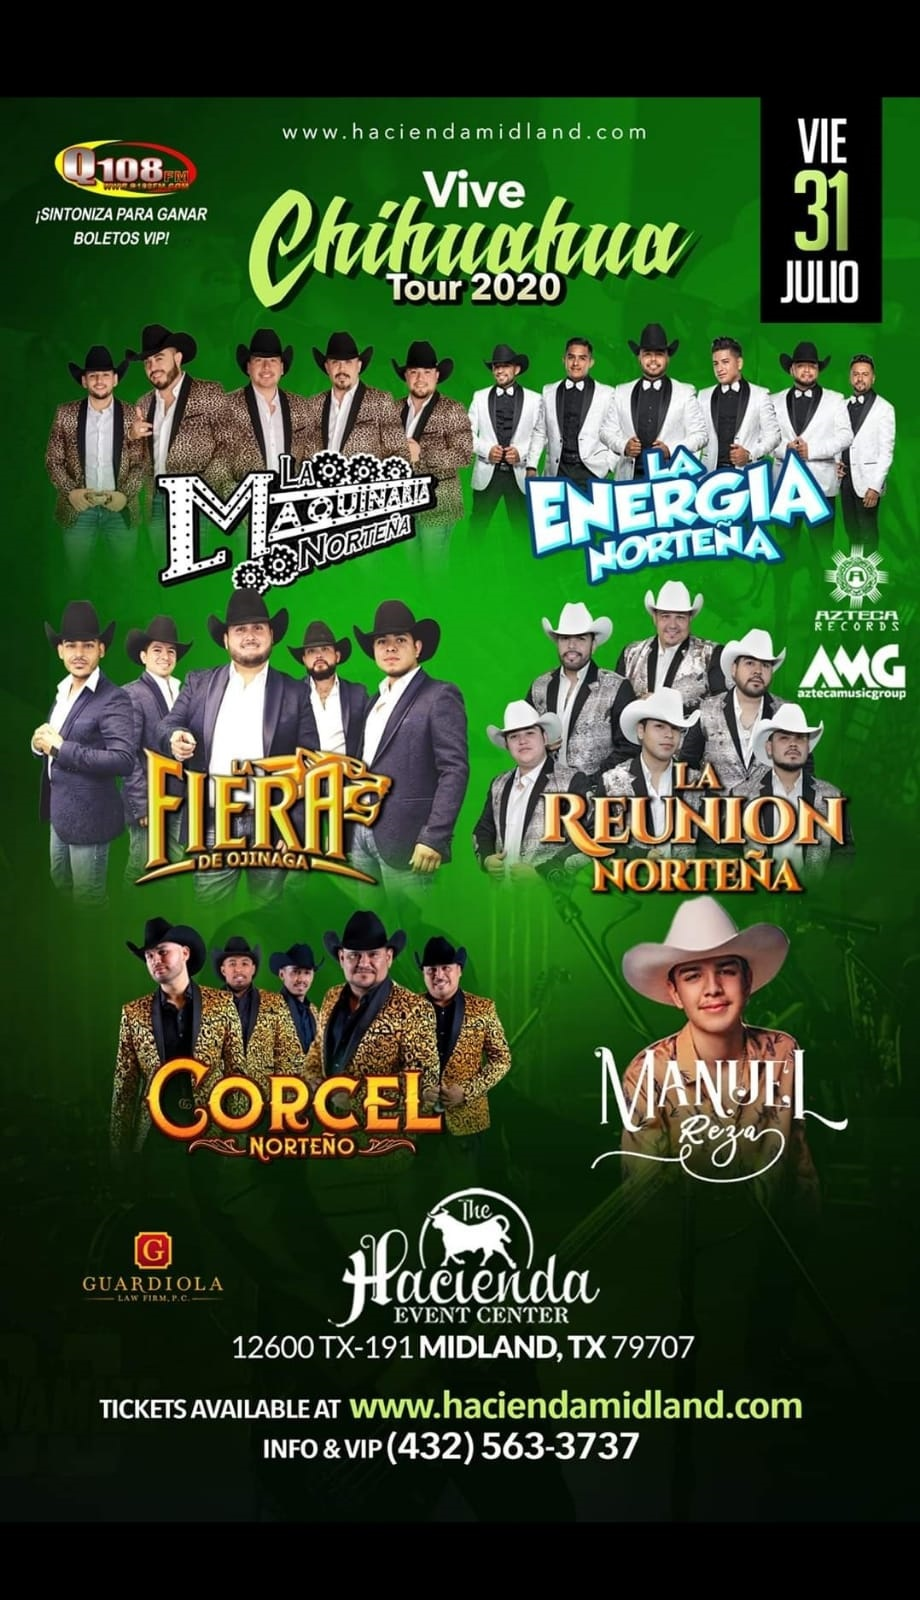 Image for LA MAQUINARIA NORTEÑA